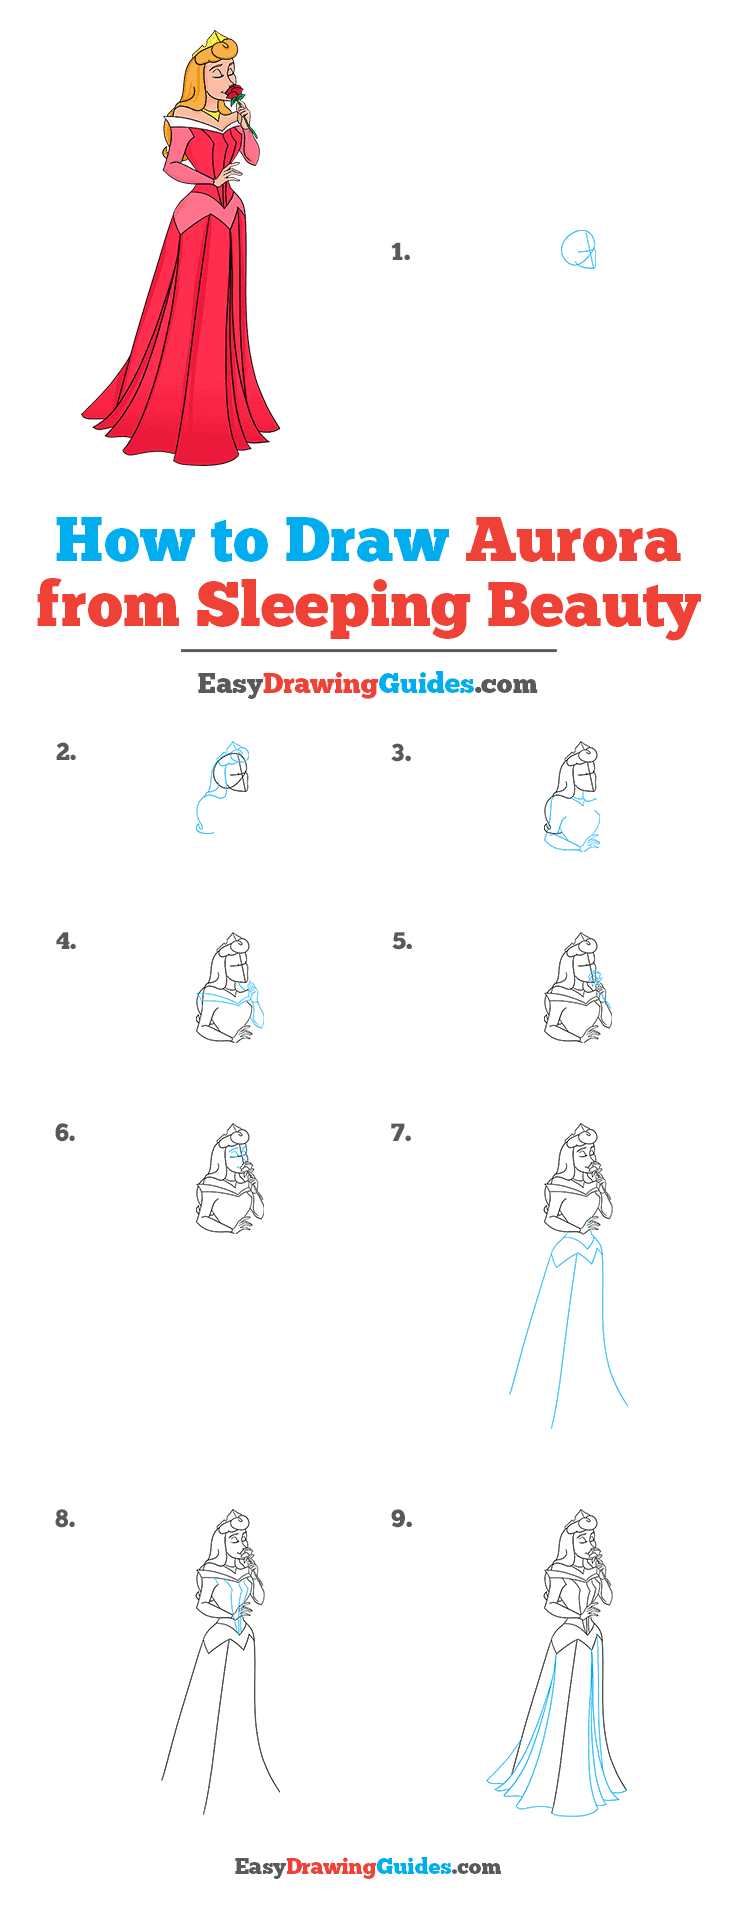 How to Draw Aurora from Sleeping Beauty Step by Step Tutorial Image